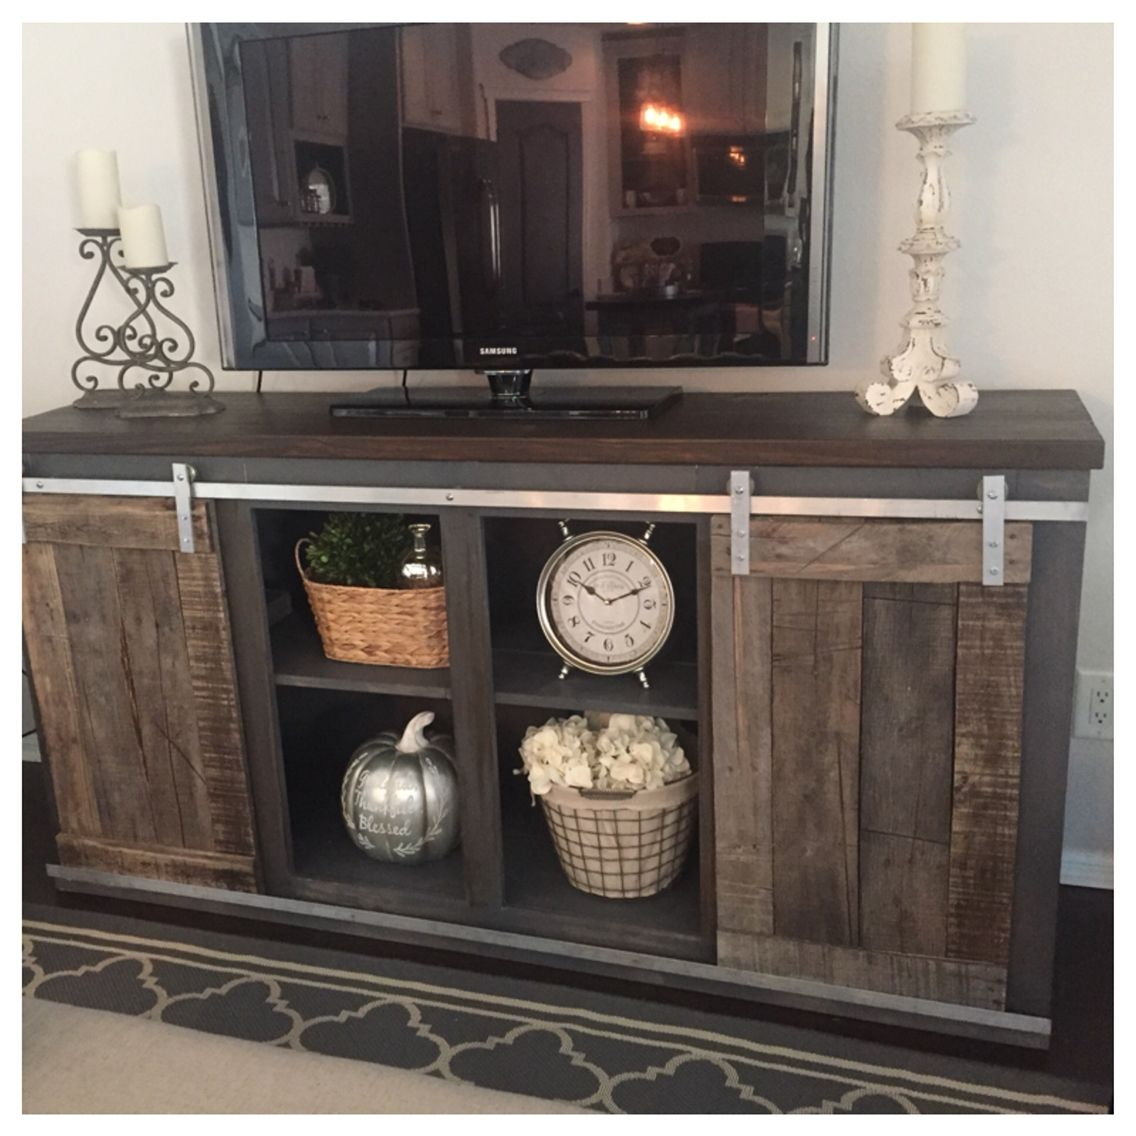 17 Diy Entertainment Center Ideas And Designs For Your New Home Rustic Tv Stand Home Diy Rustic Tv Console